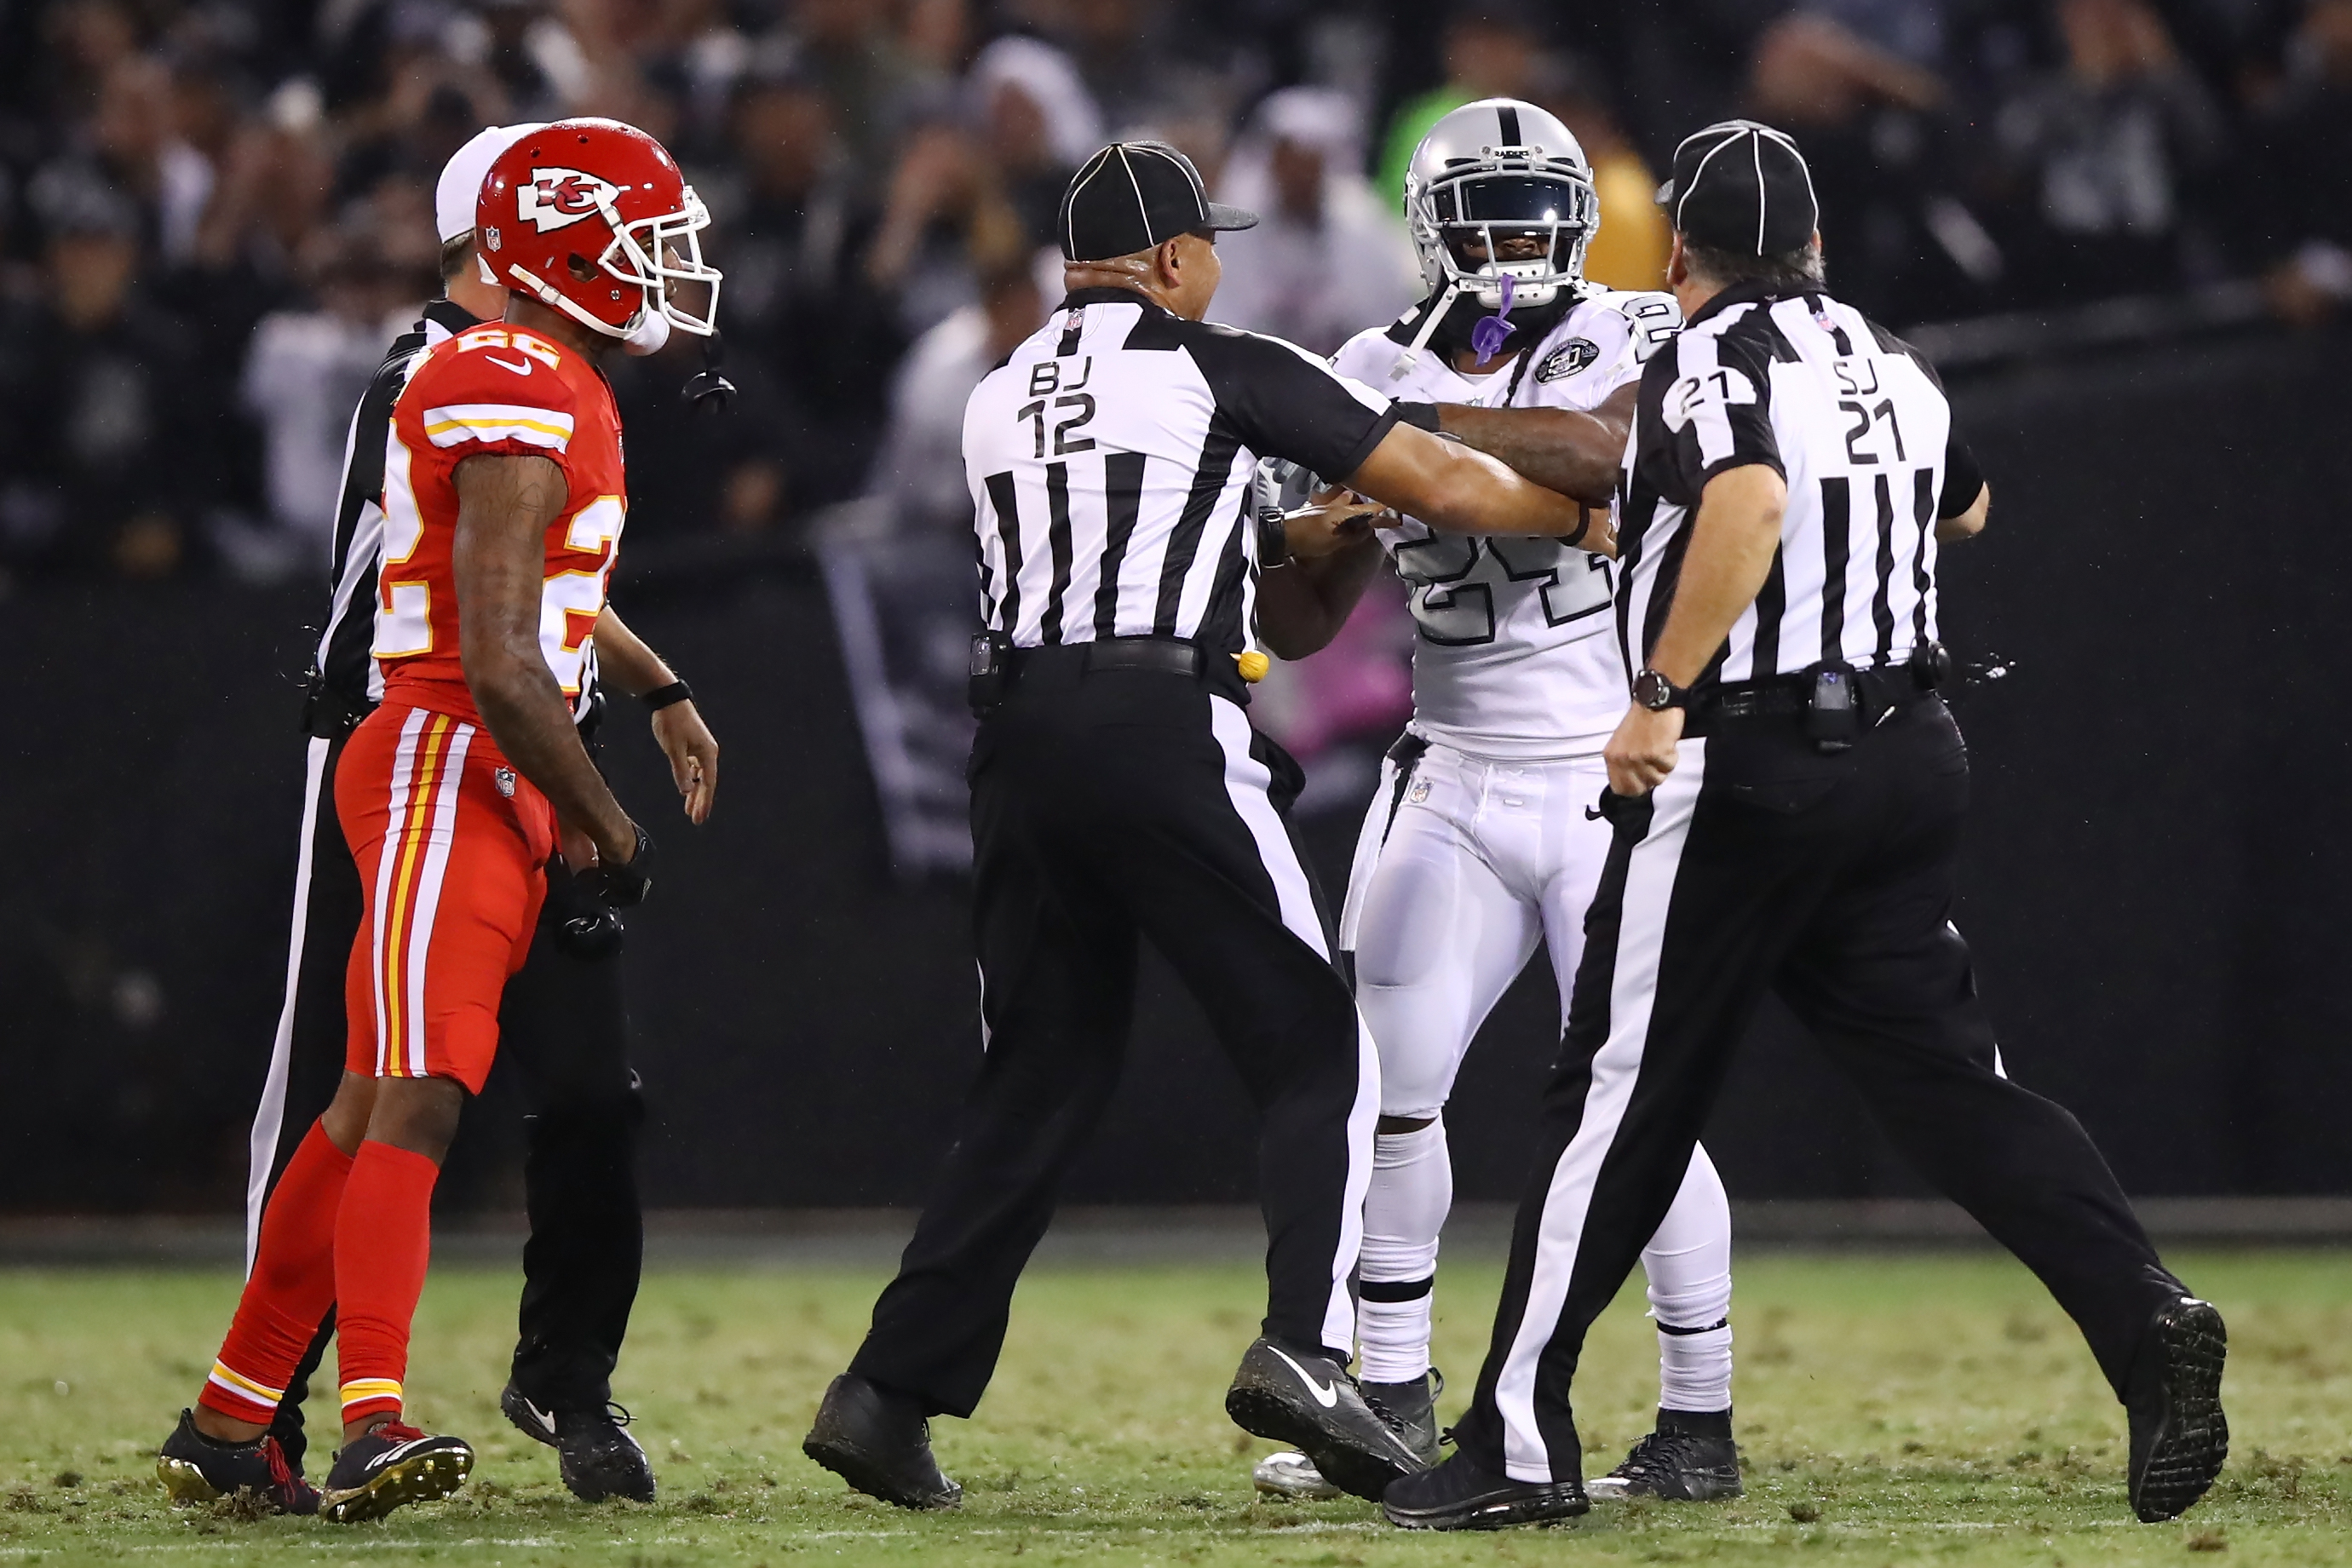 Marcus Peters plans to back up Marshawn Lynch in suspension appeal